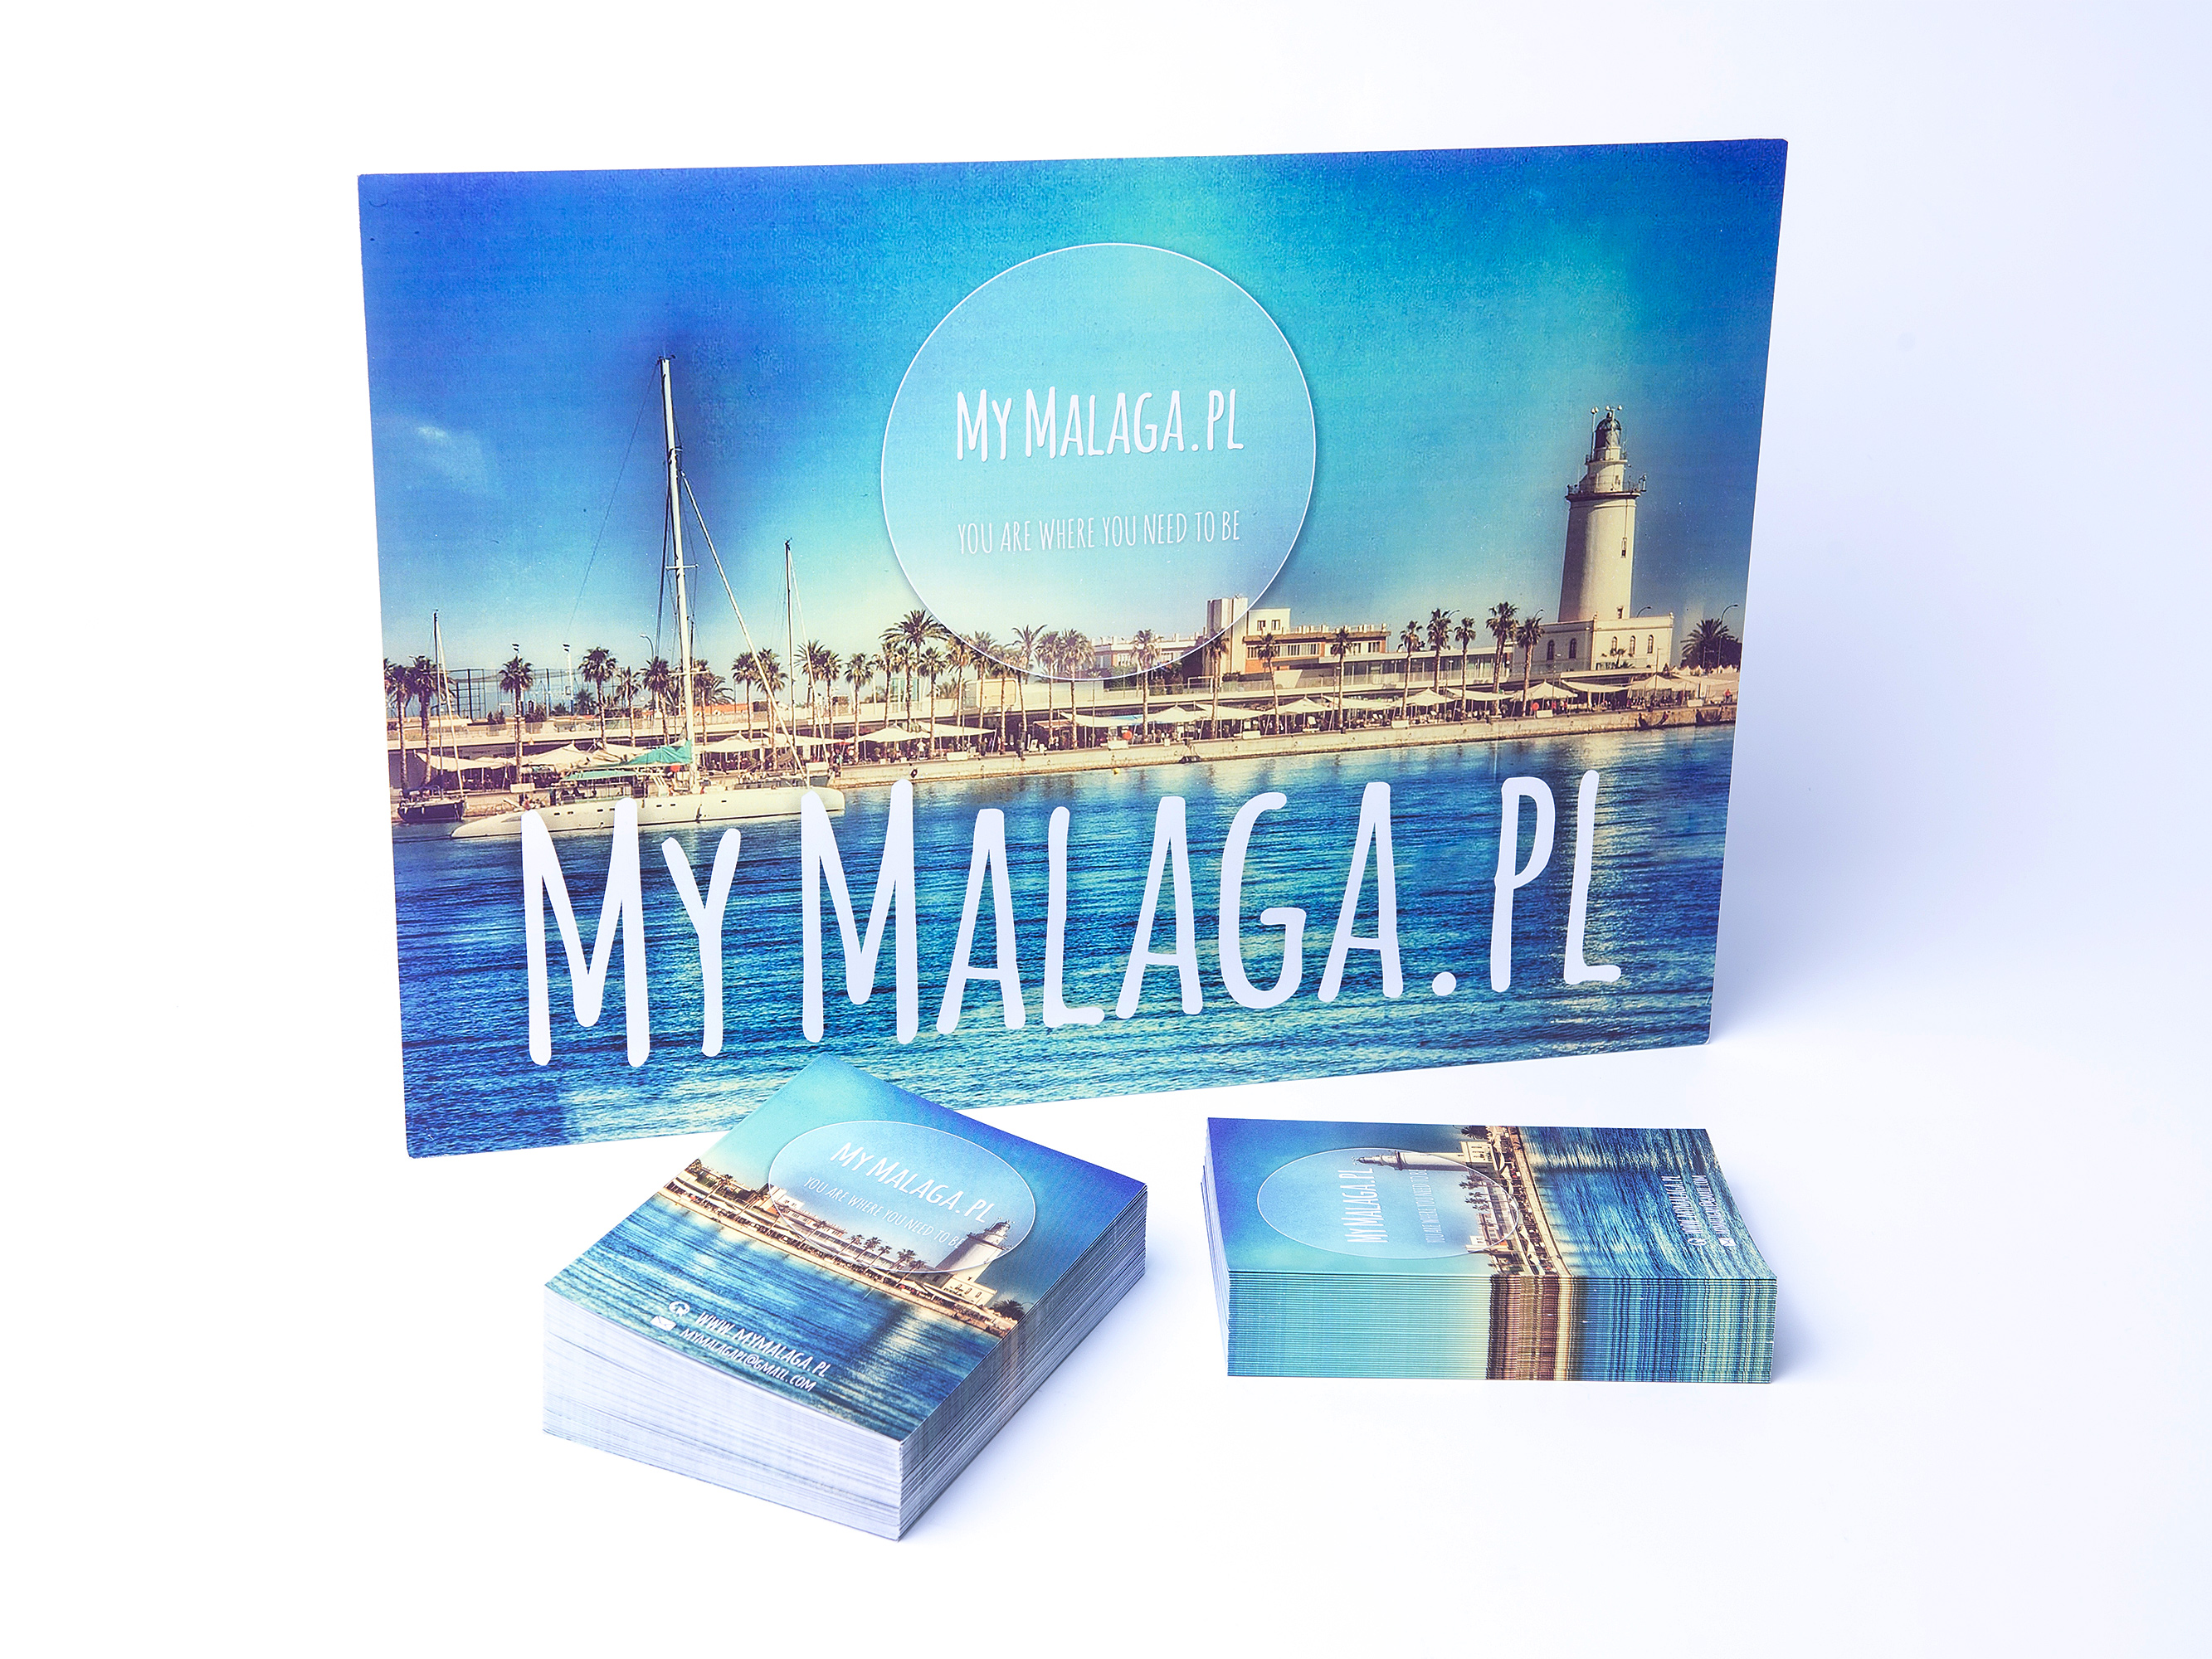 My Malaga.pl is the perfect guide in order to plan the best holiday in Spain.